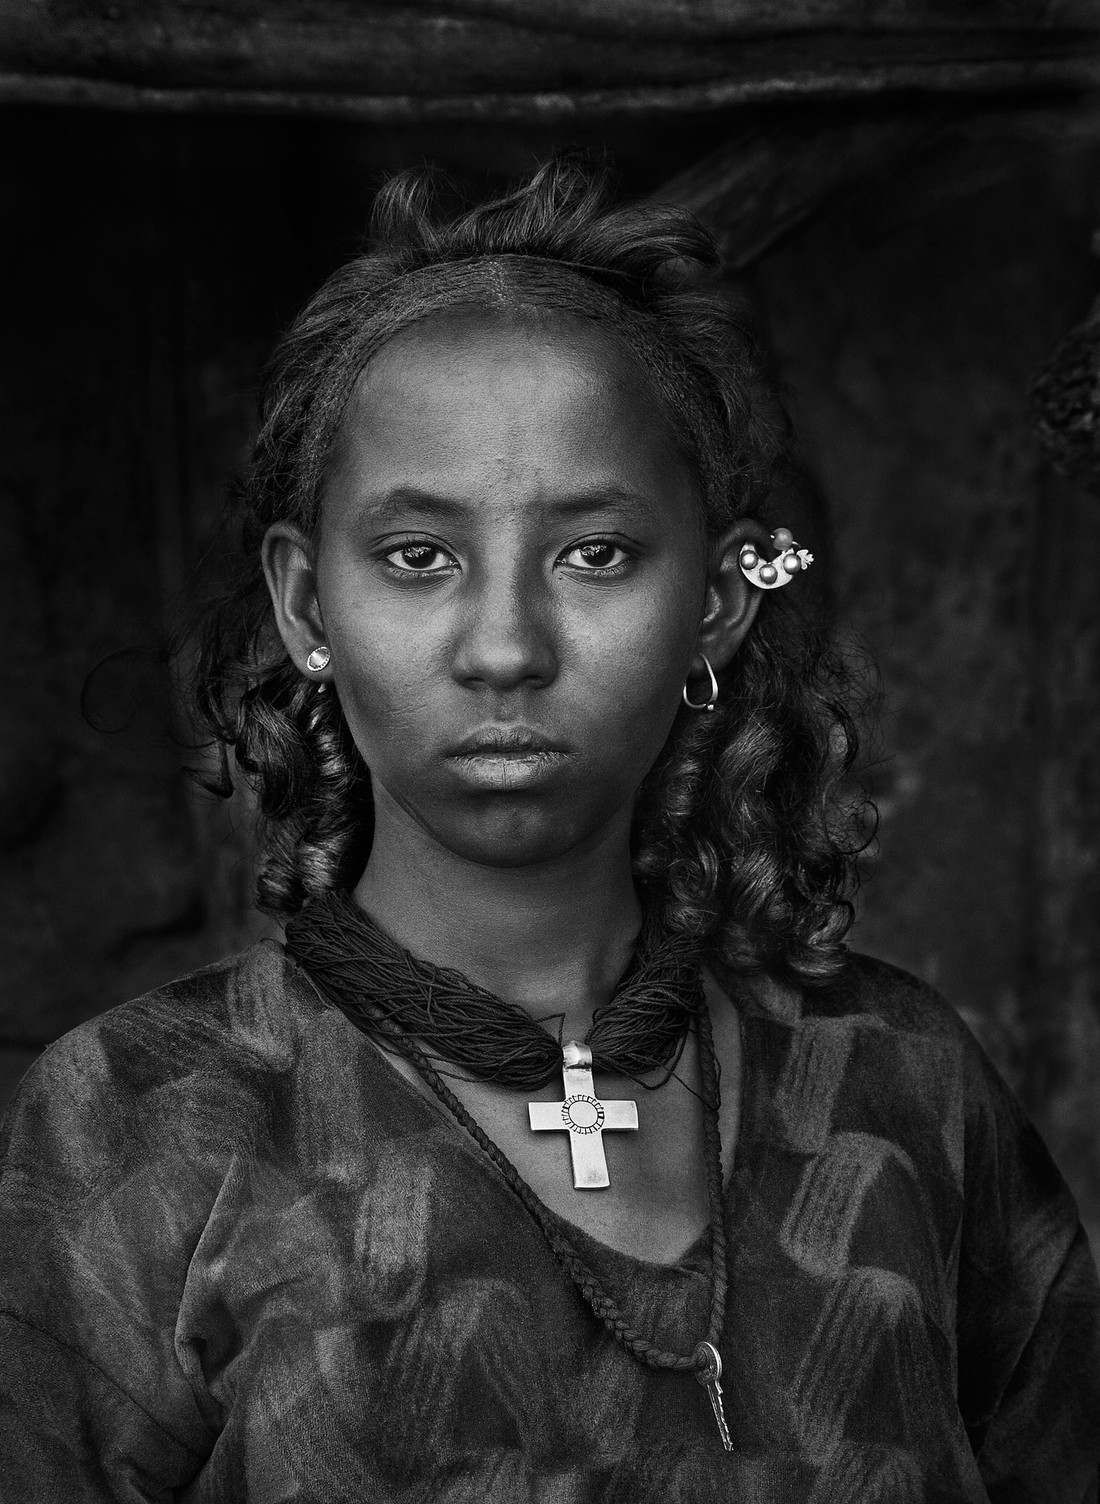 nd15_ethiopian_highlands_05.jpg